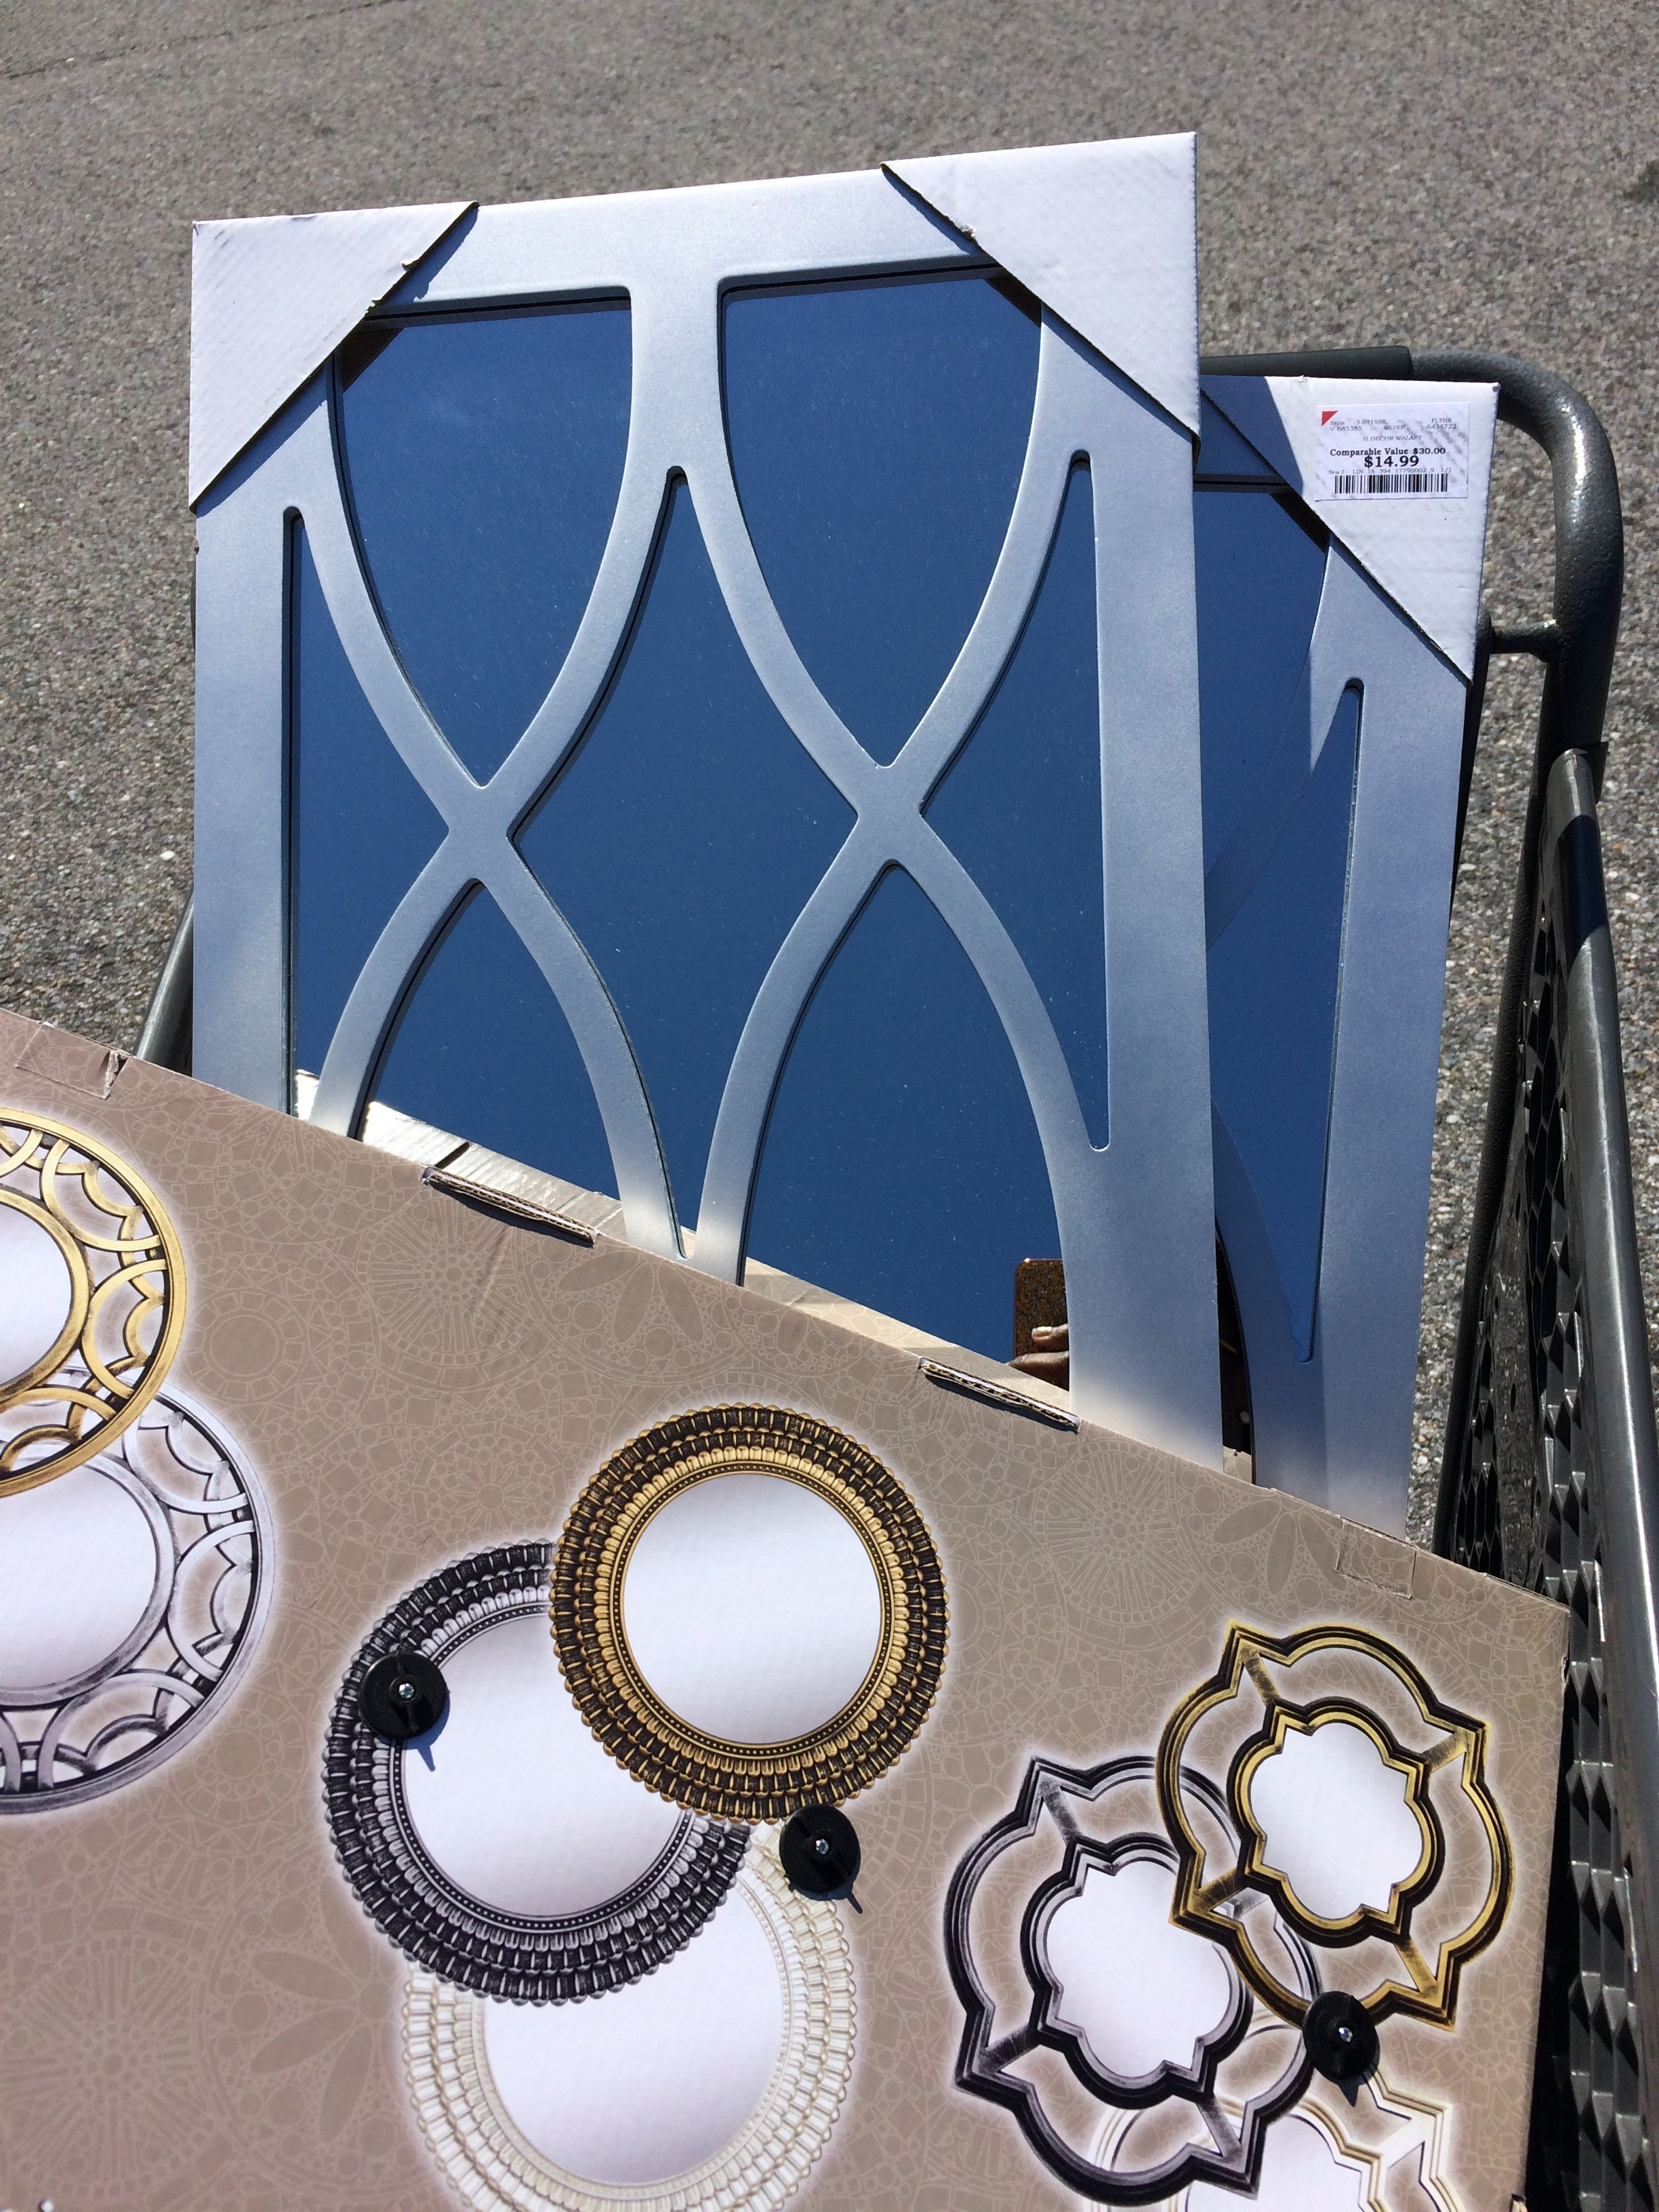 Mirrors From Burlington Coat Factory For 15 00 Nice Decor Pieces